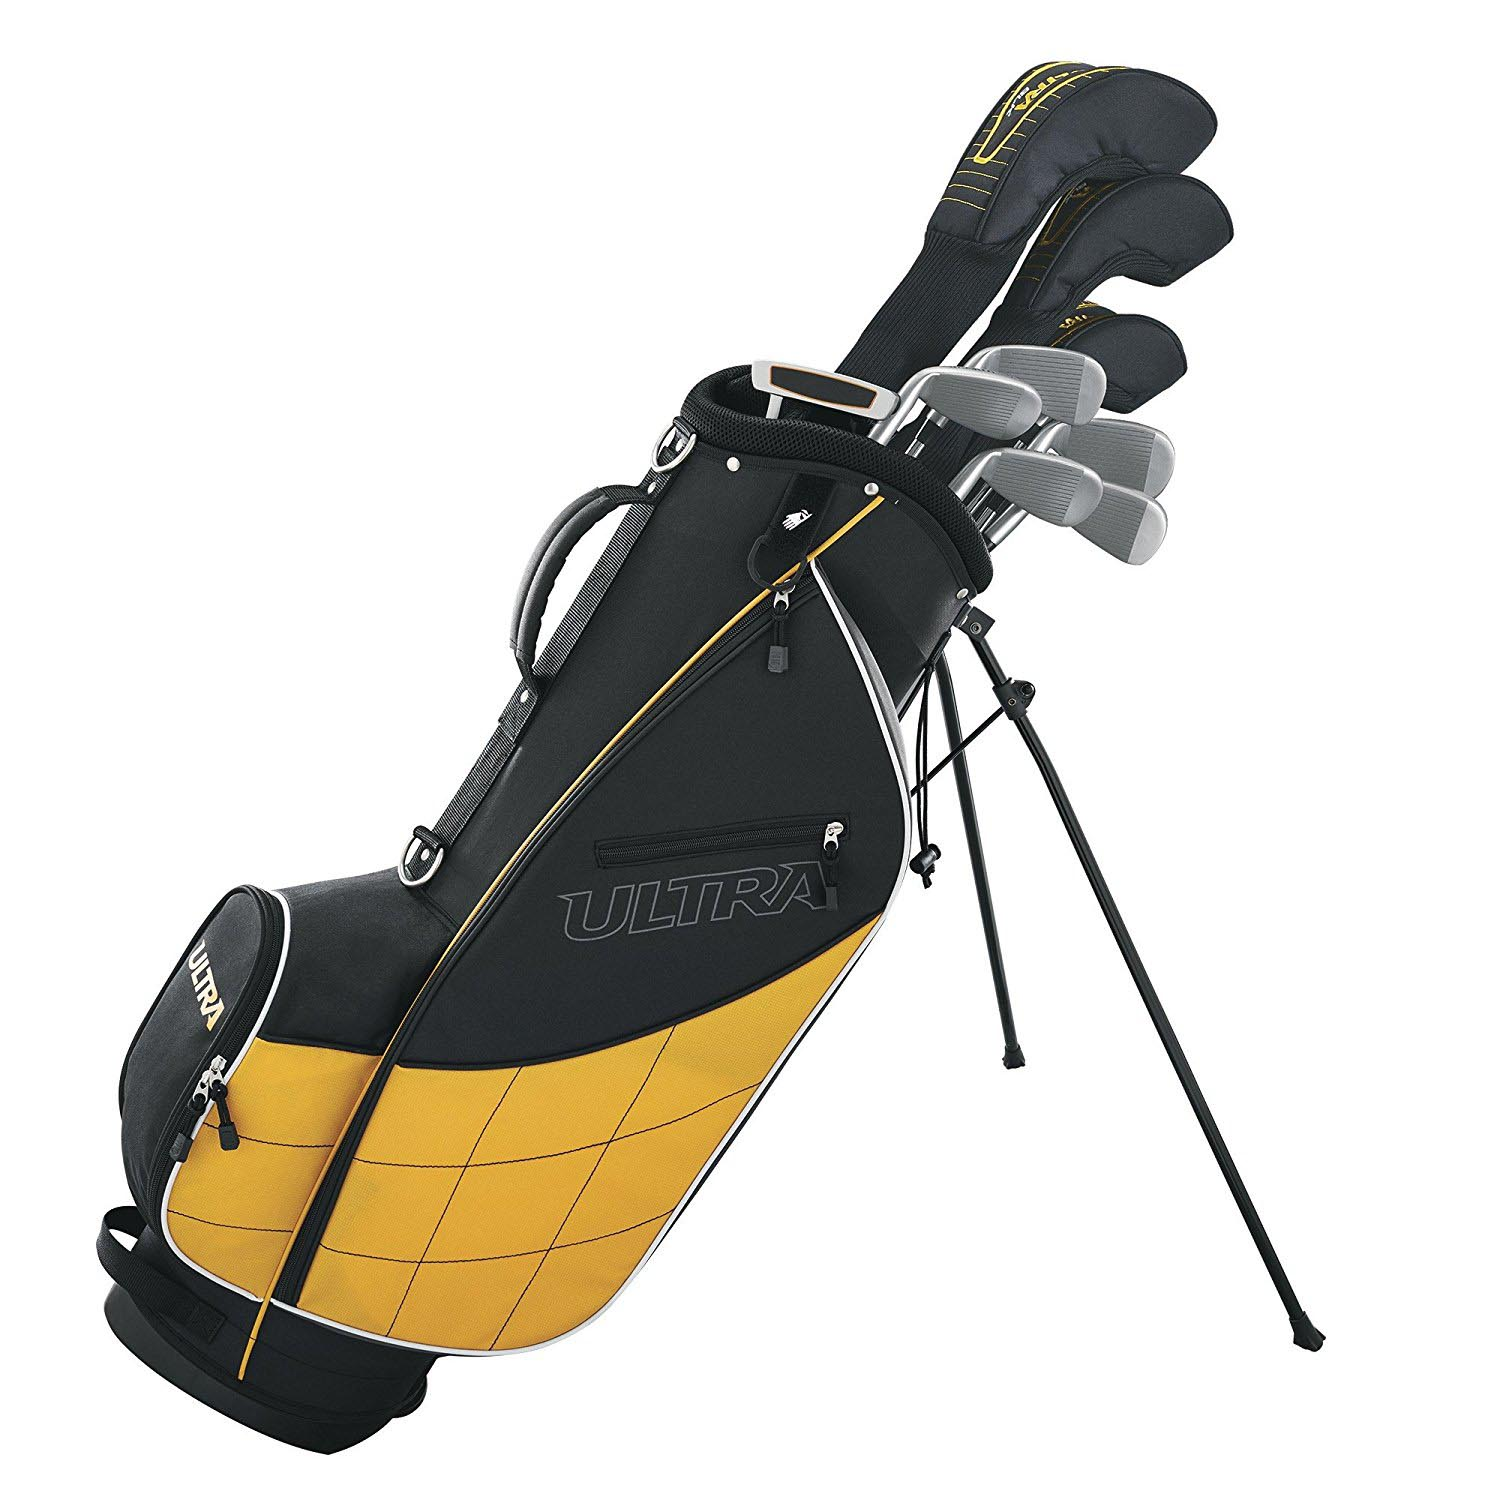 new wilson ultra 2017 men 39 s complete 13 piece golf club set with stand bag ebay. Black Bedroom Furniture Sets. Home Design Ideas